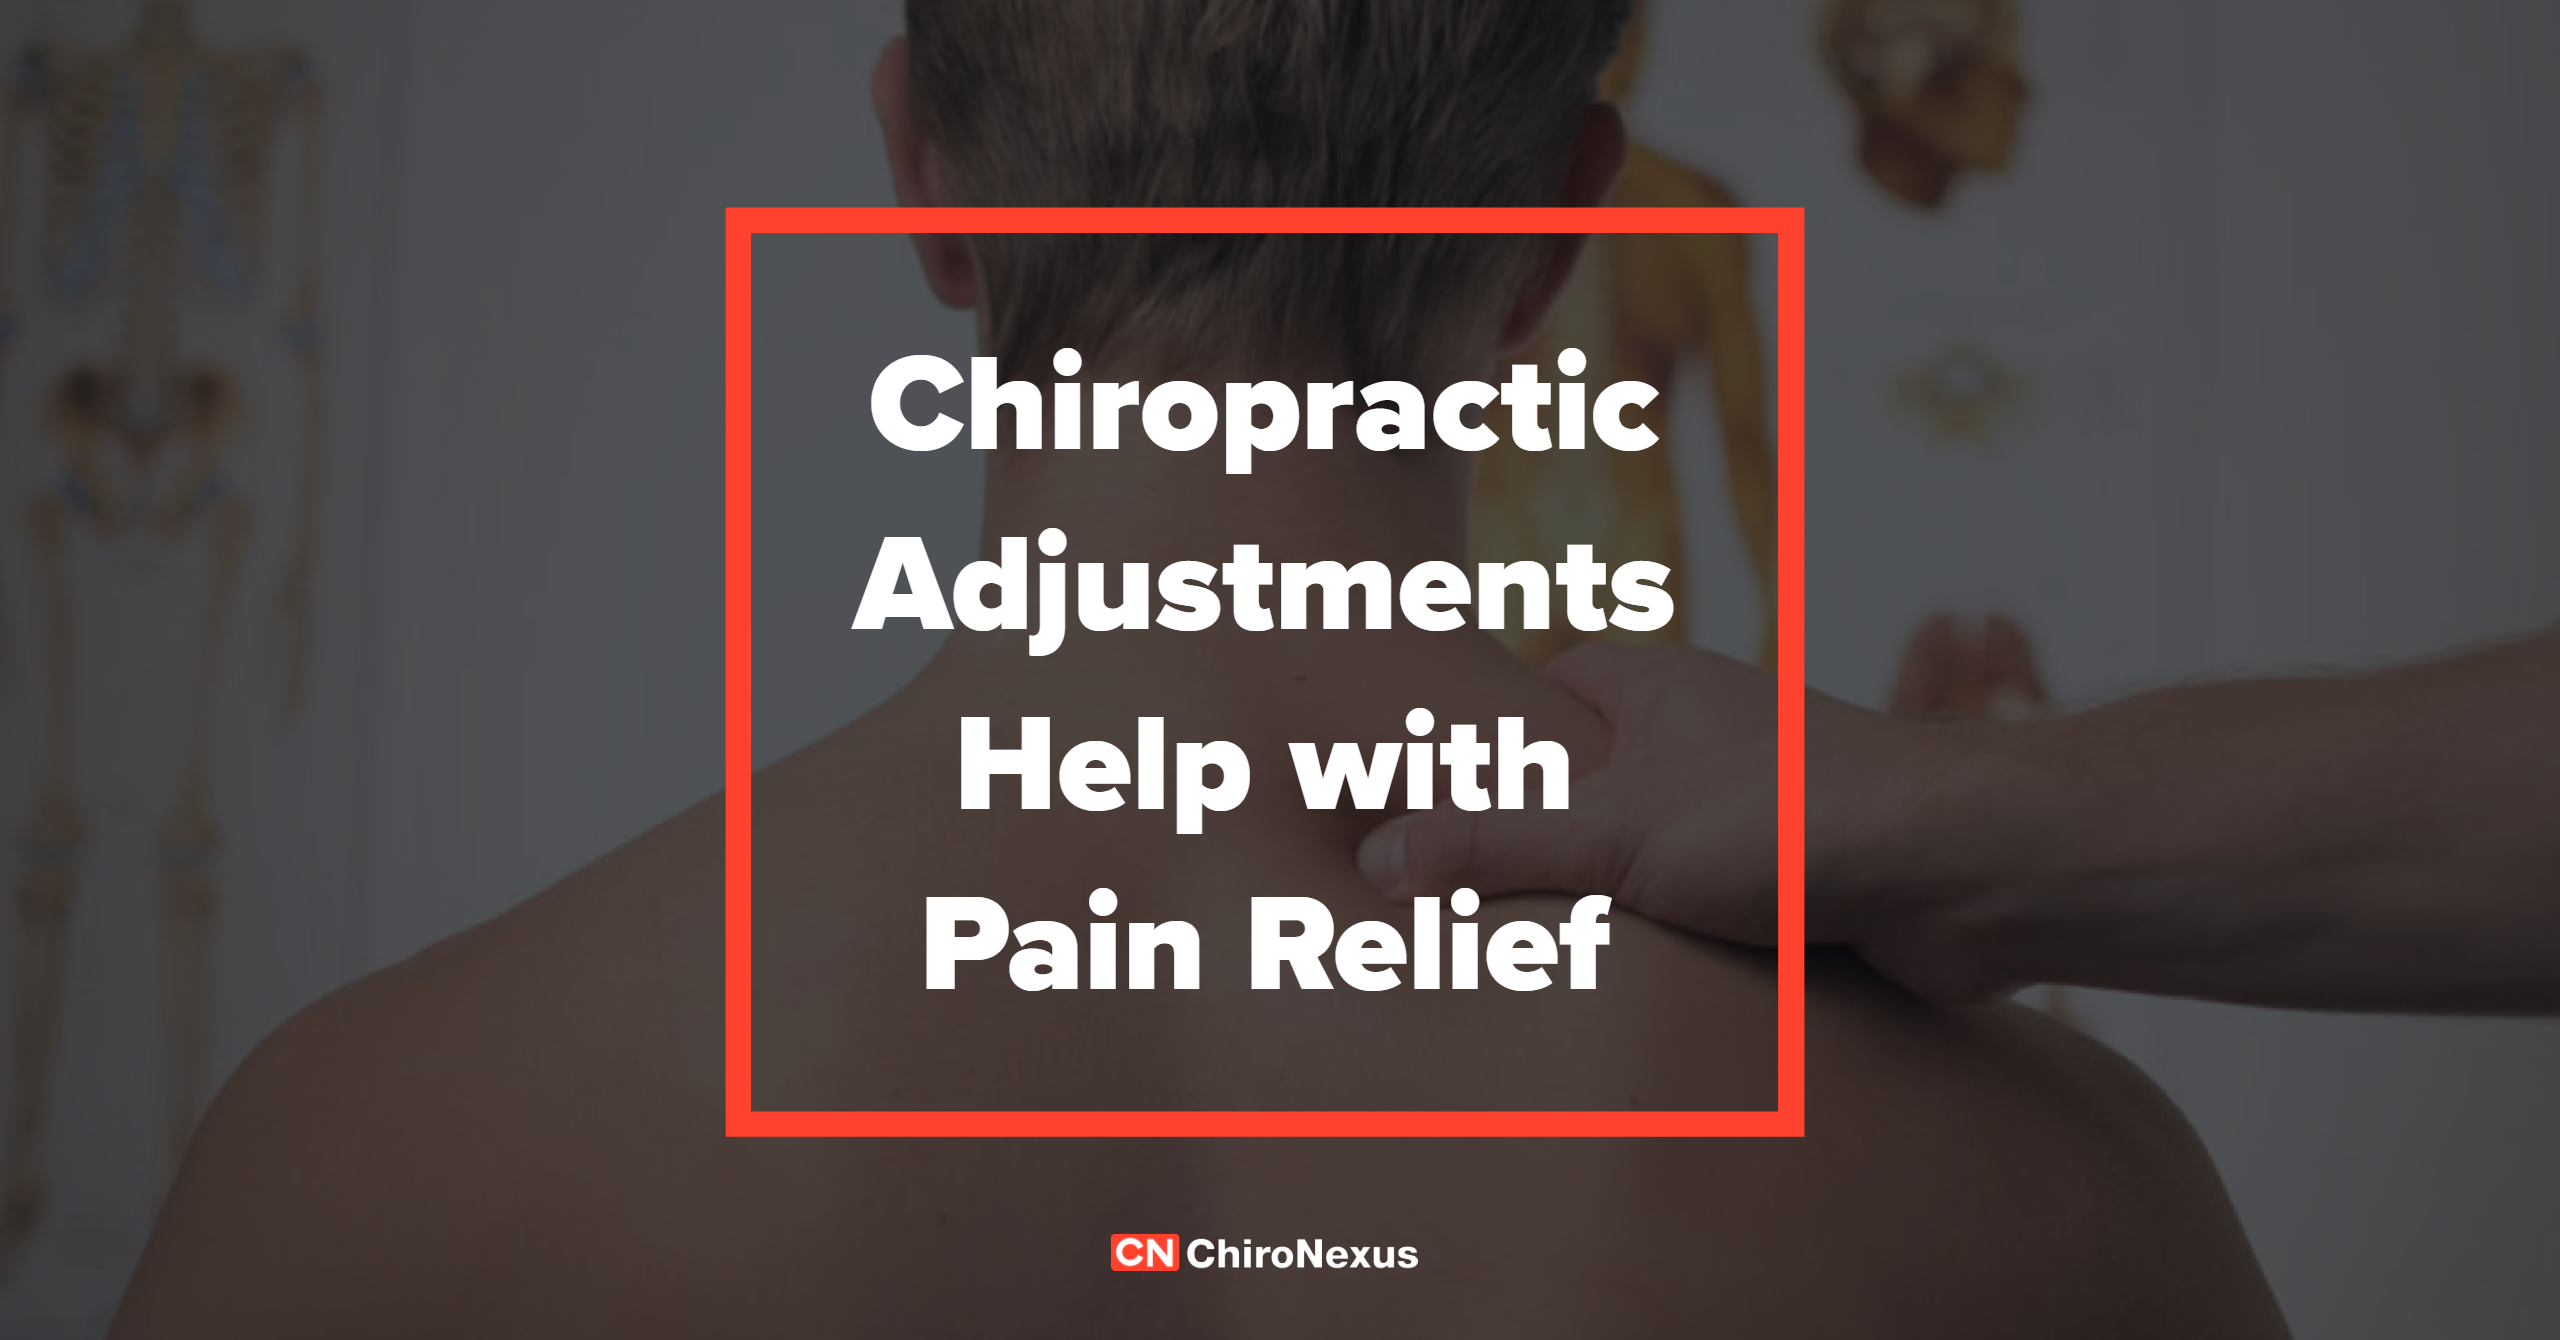 Chiropractic Adjustments Help with Pain Relief